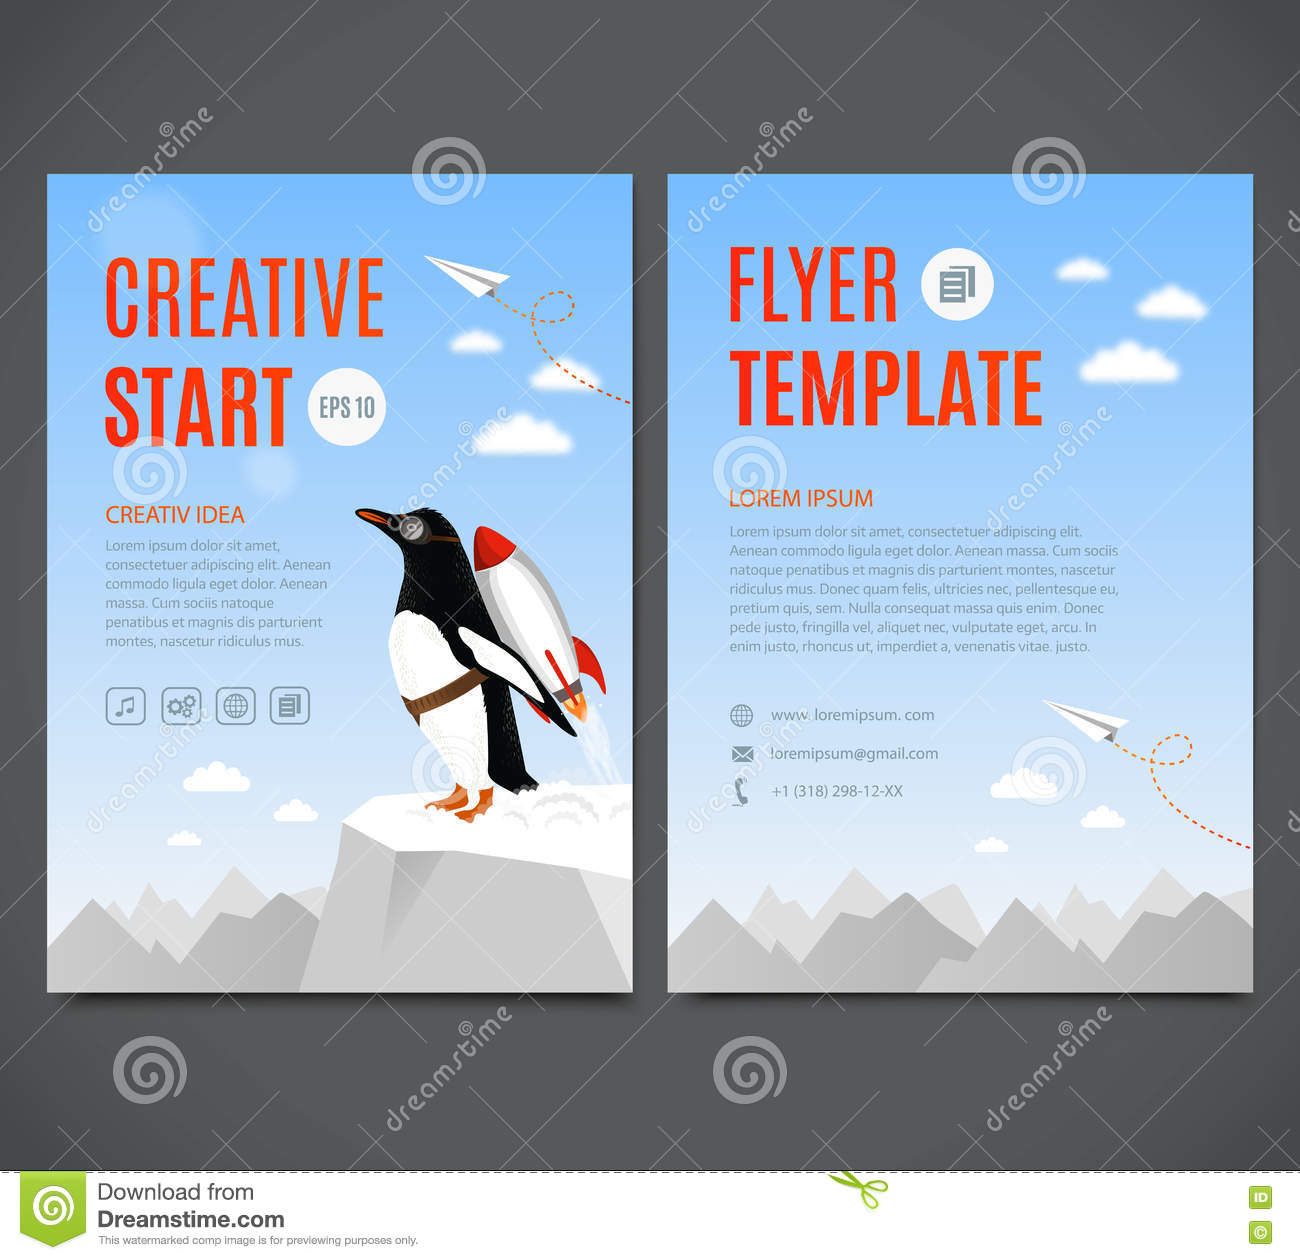 vector template design flyer brochure cover page creative vector template design flyer brochure cover page creative start and creative